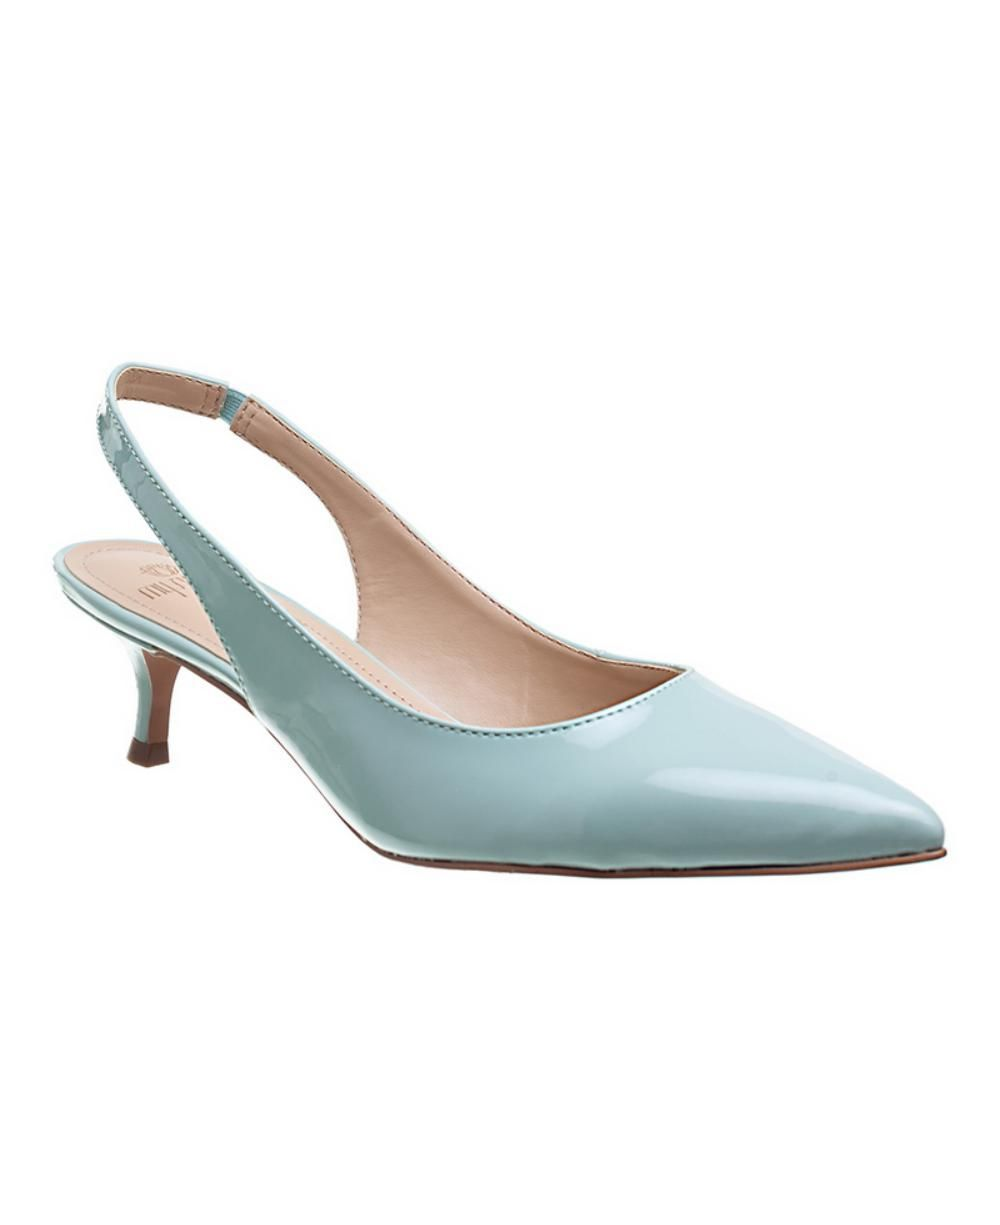 70450059_163_1-SCARPIN-BAIXO-SWEET-COLOR